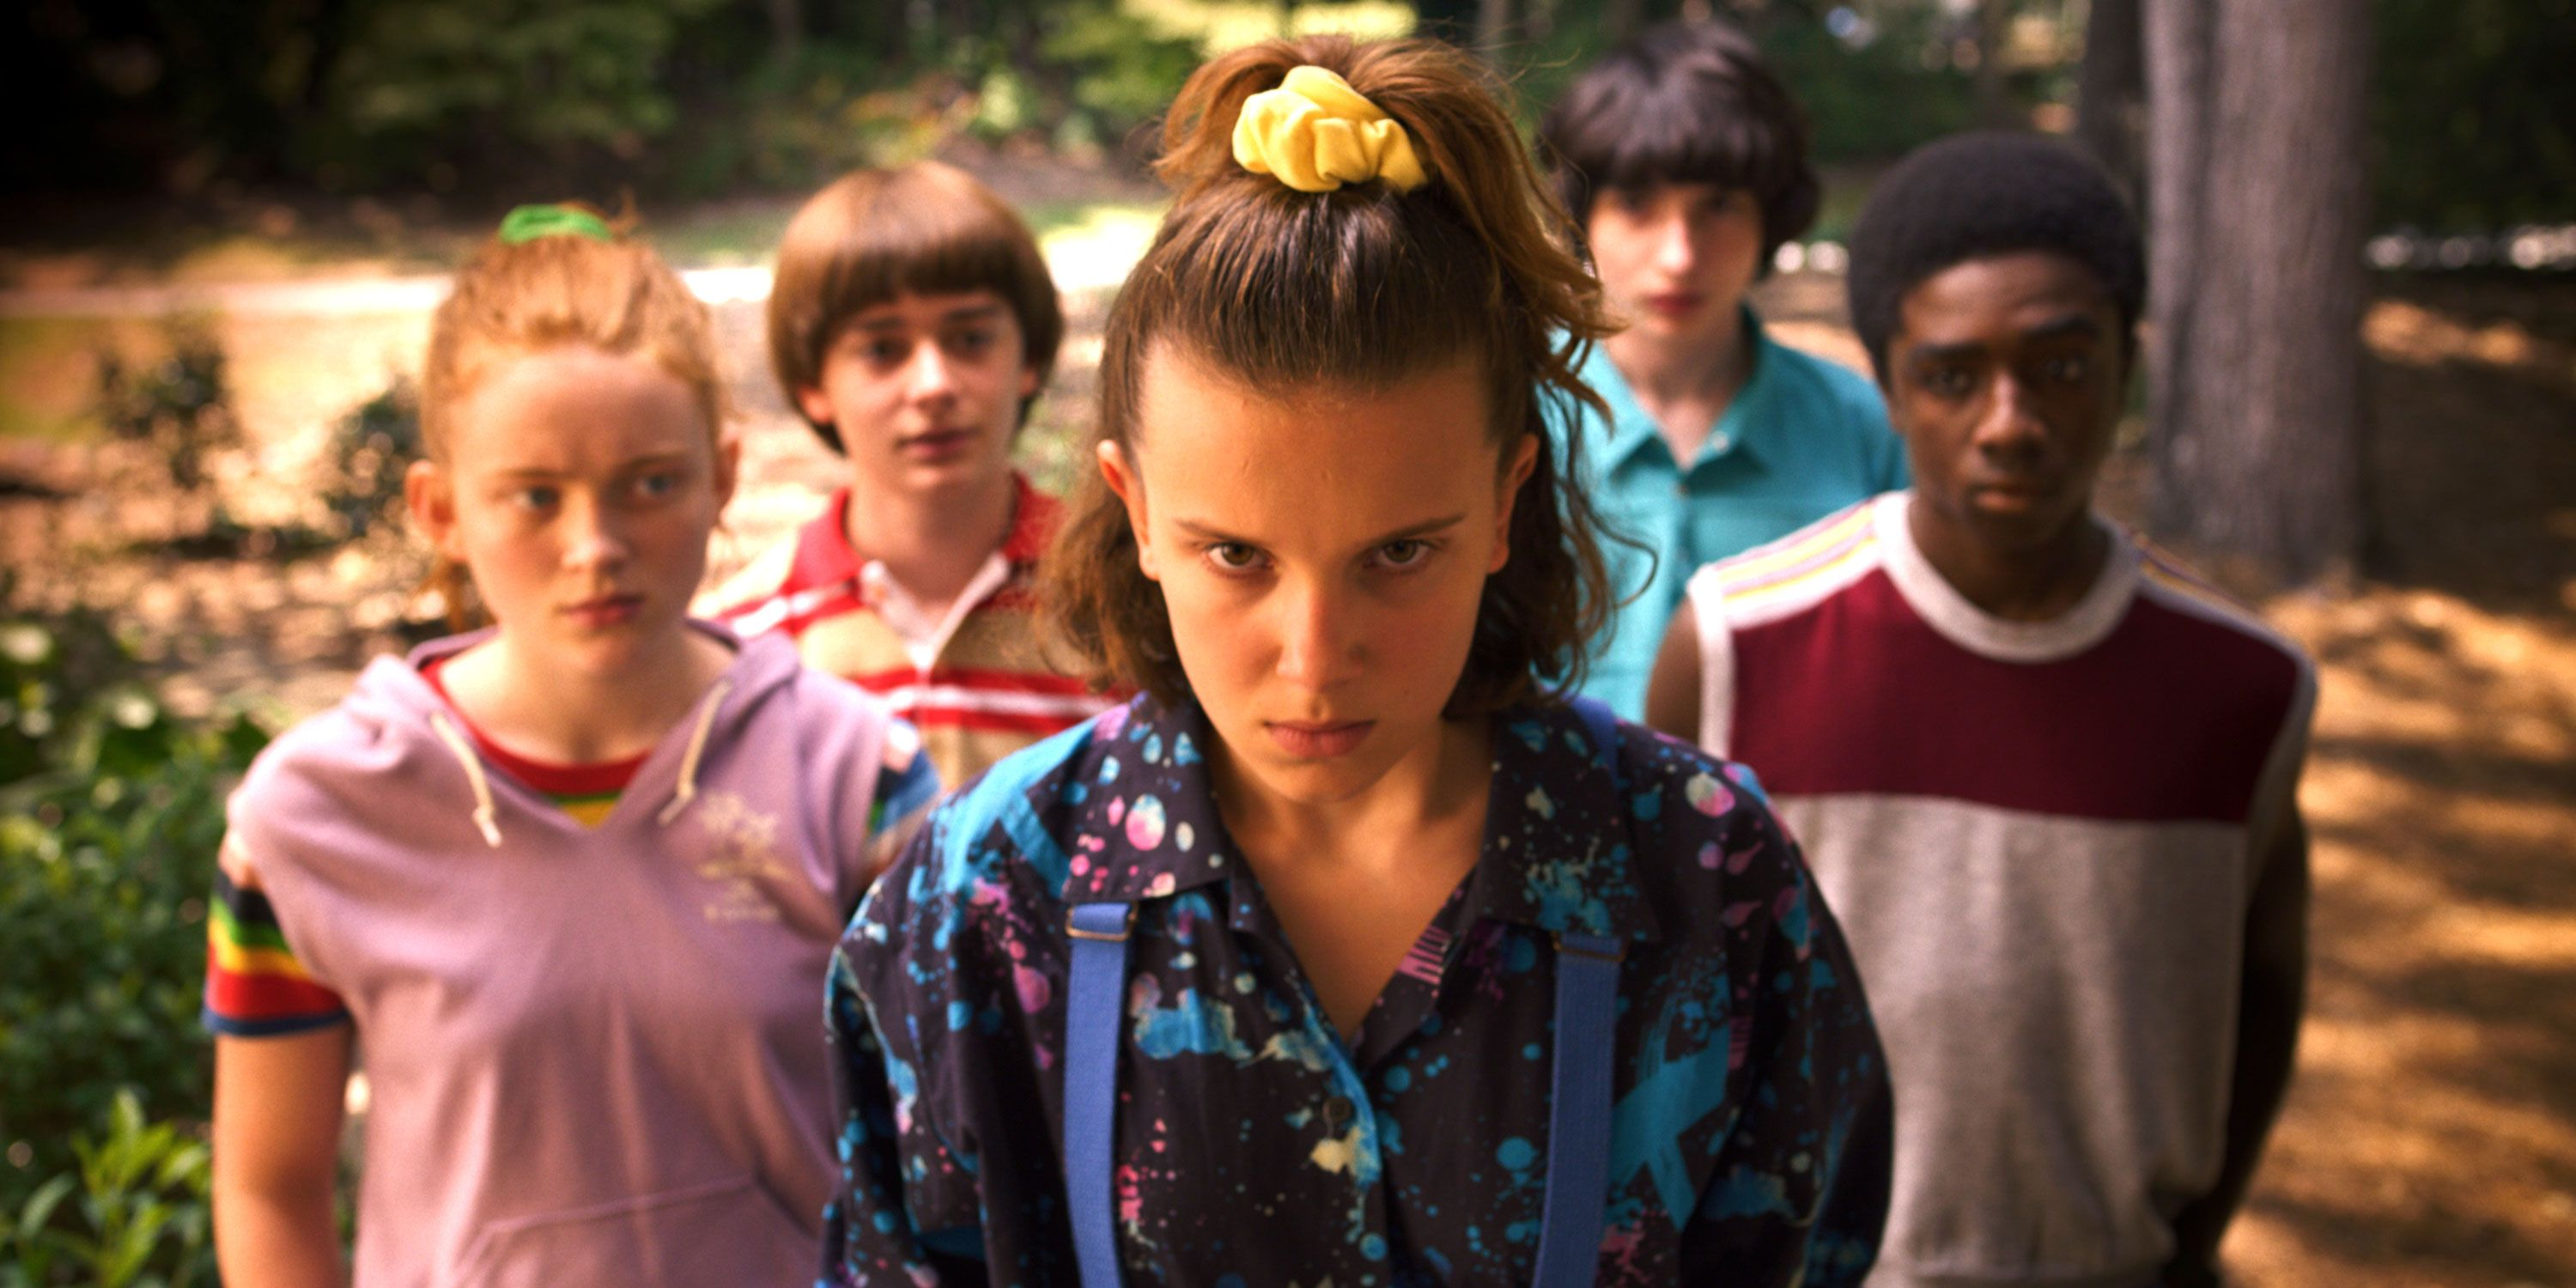 4 Seasons Group stranger things season 4 release date, cast and more